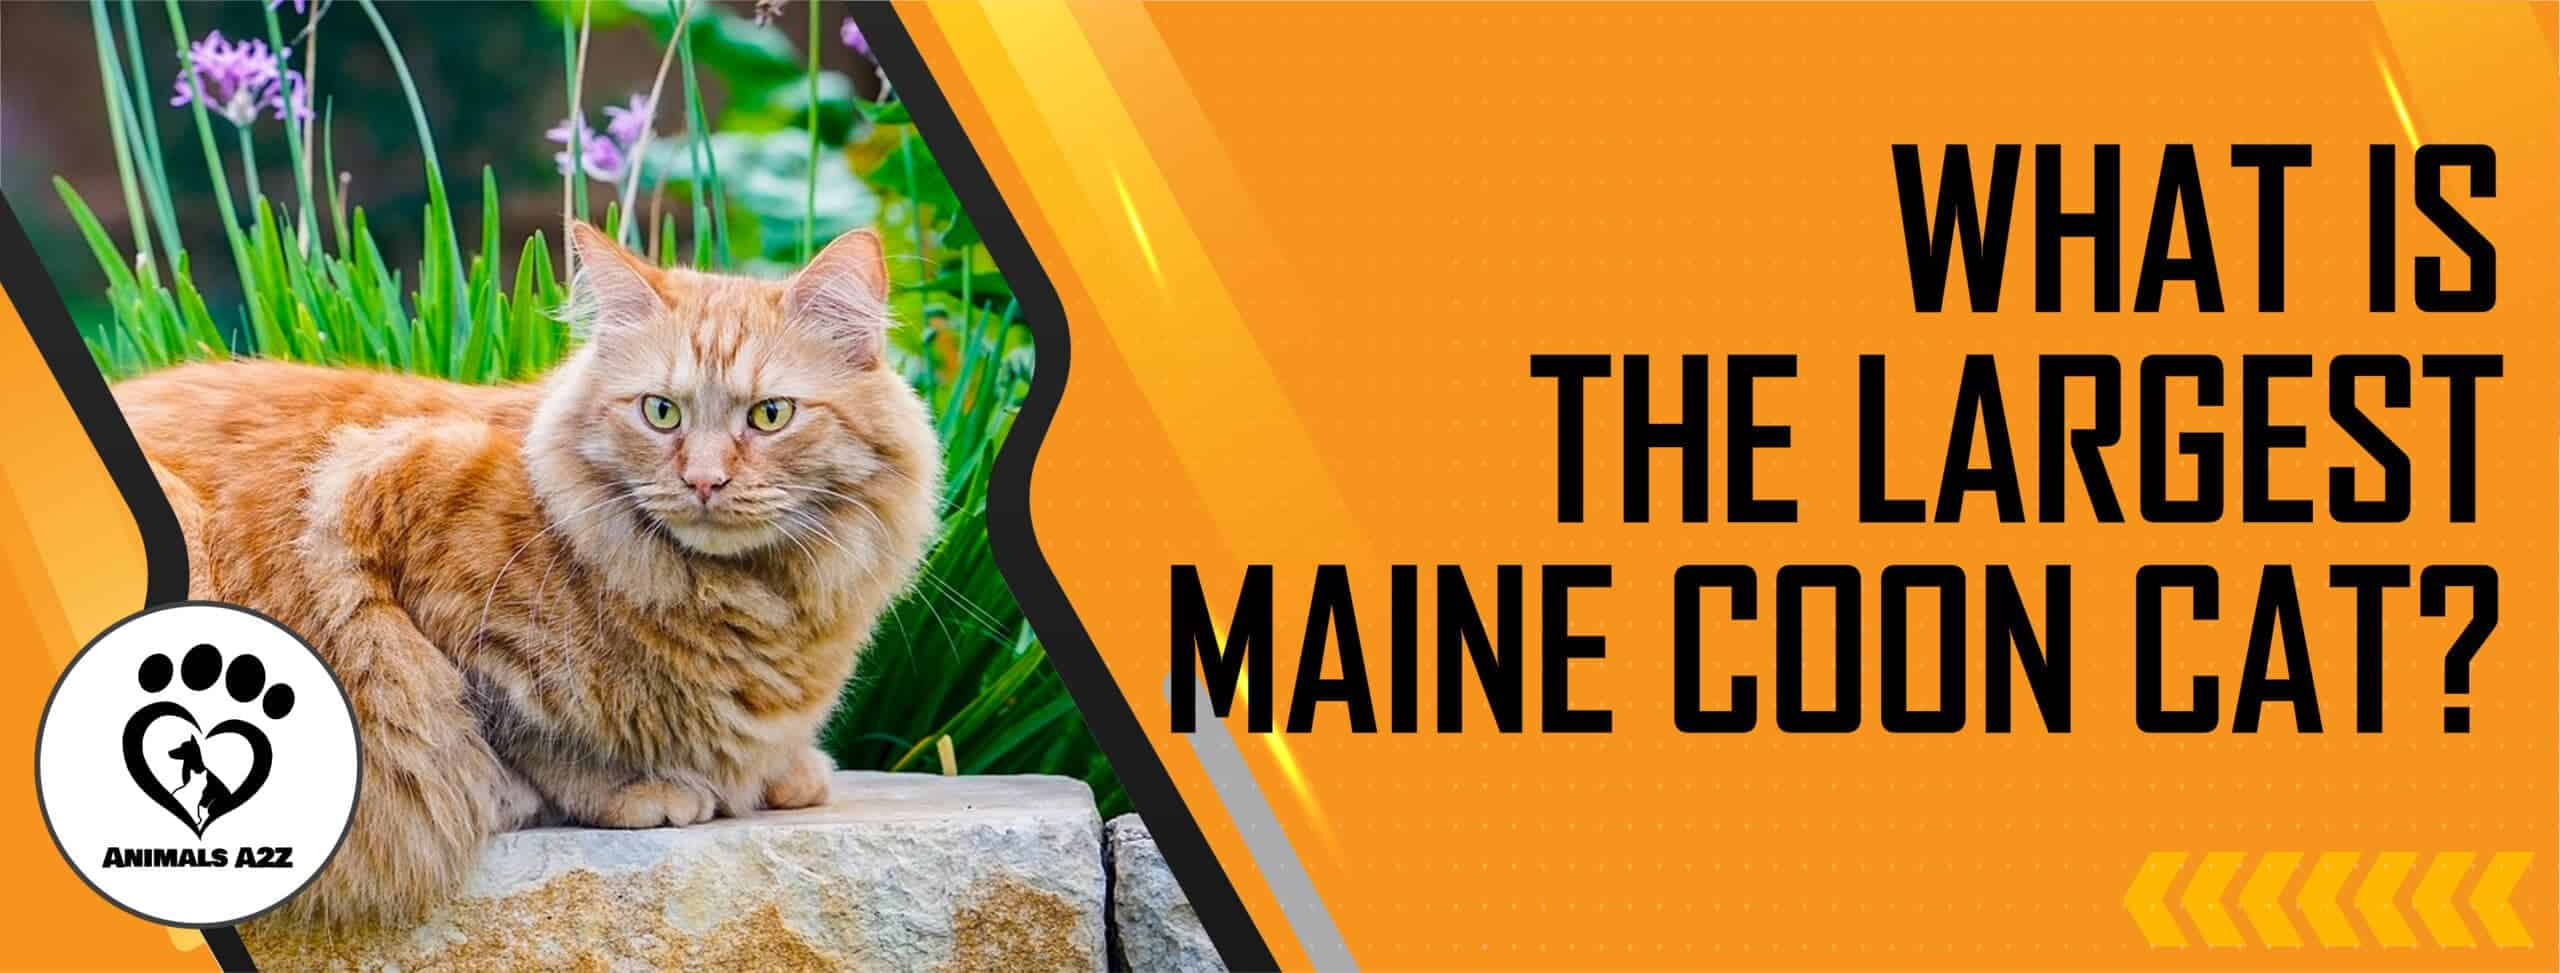 What is the largest Maine Coon cat?